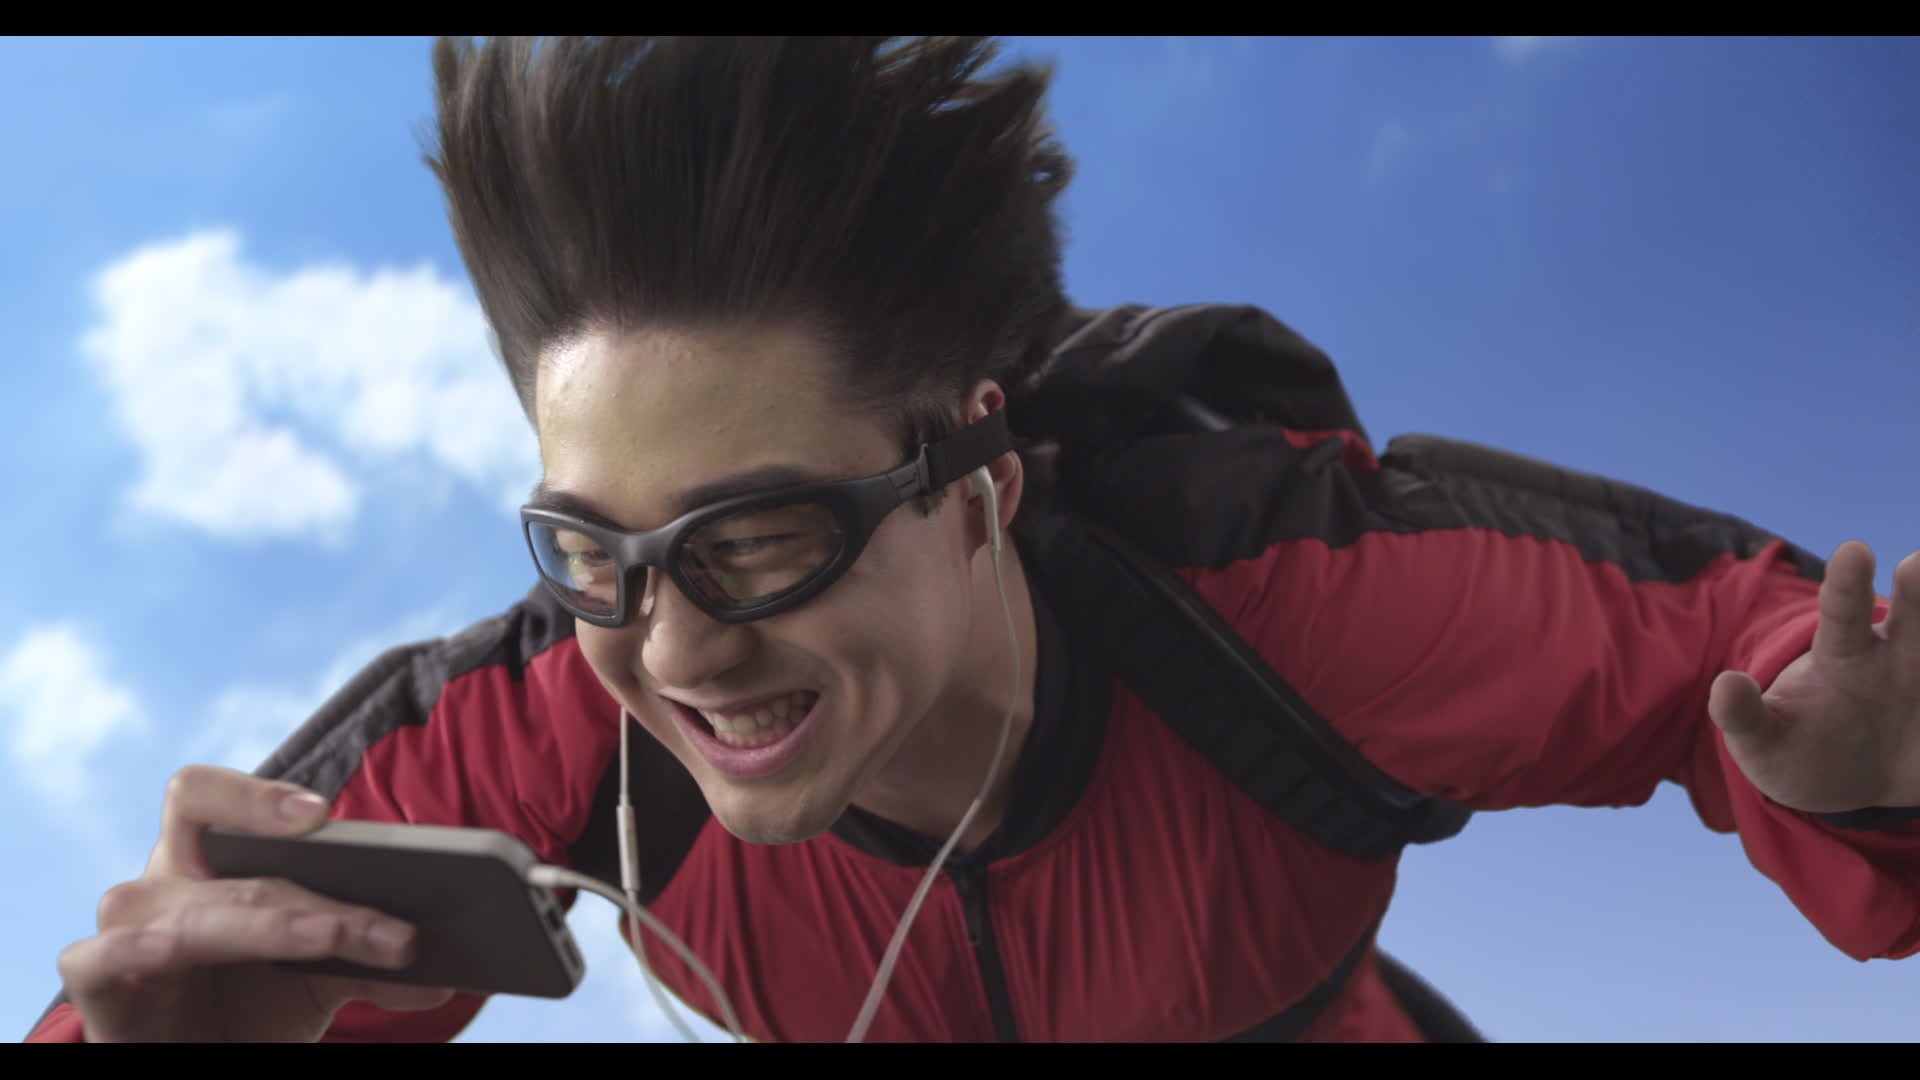 Official Viki Channel Episode 11: Viki Skydiving Commercial